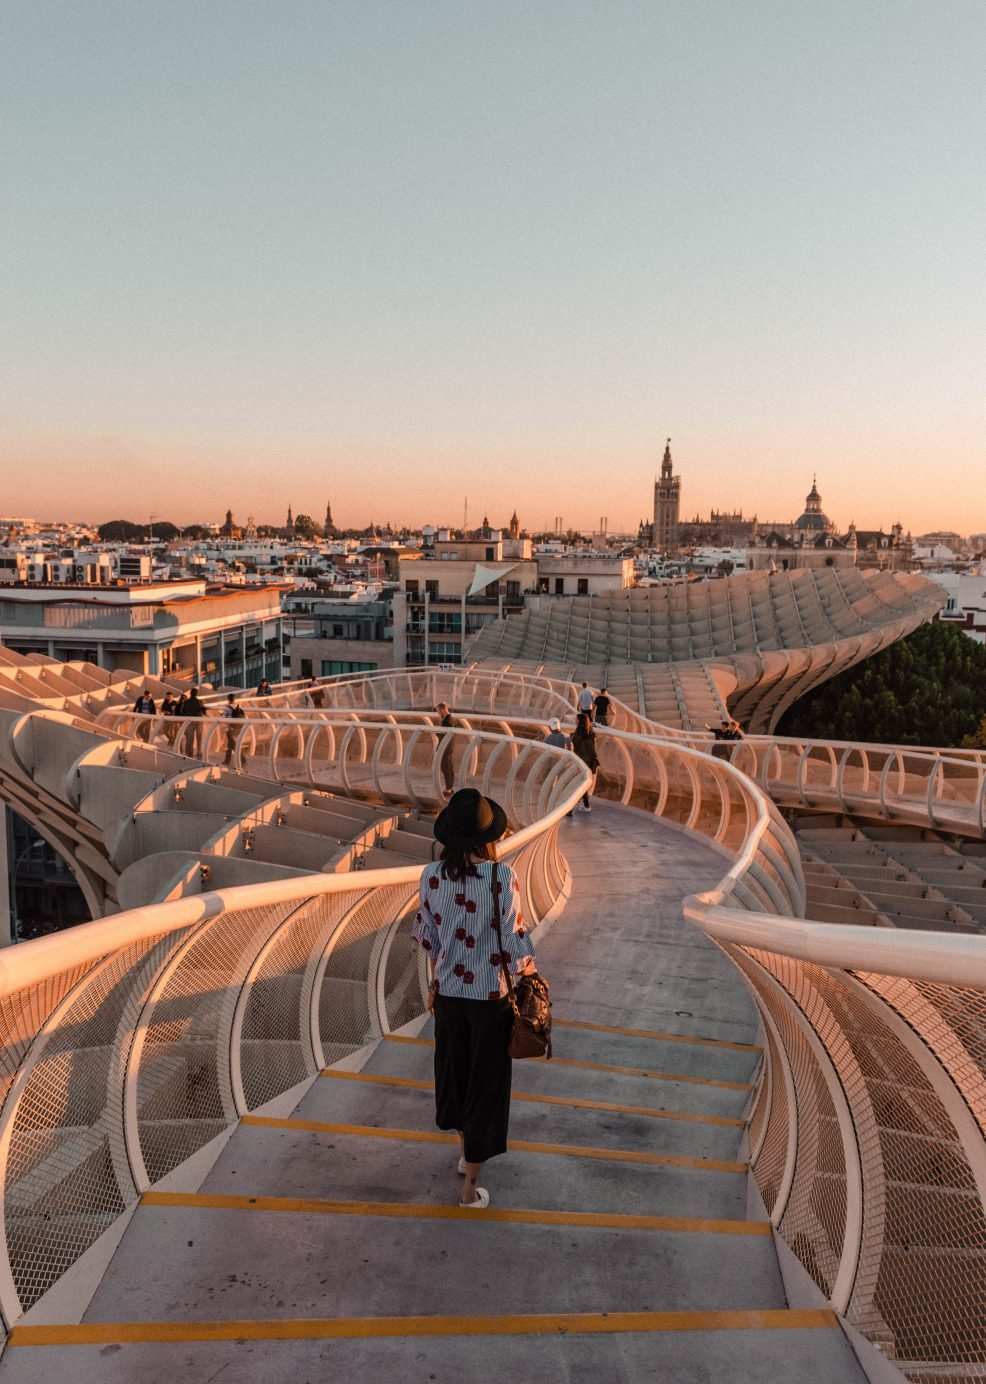 Views of Sevilla from the Metropol Parasol at sunset